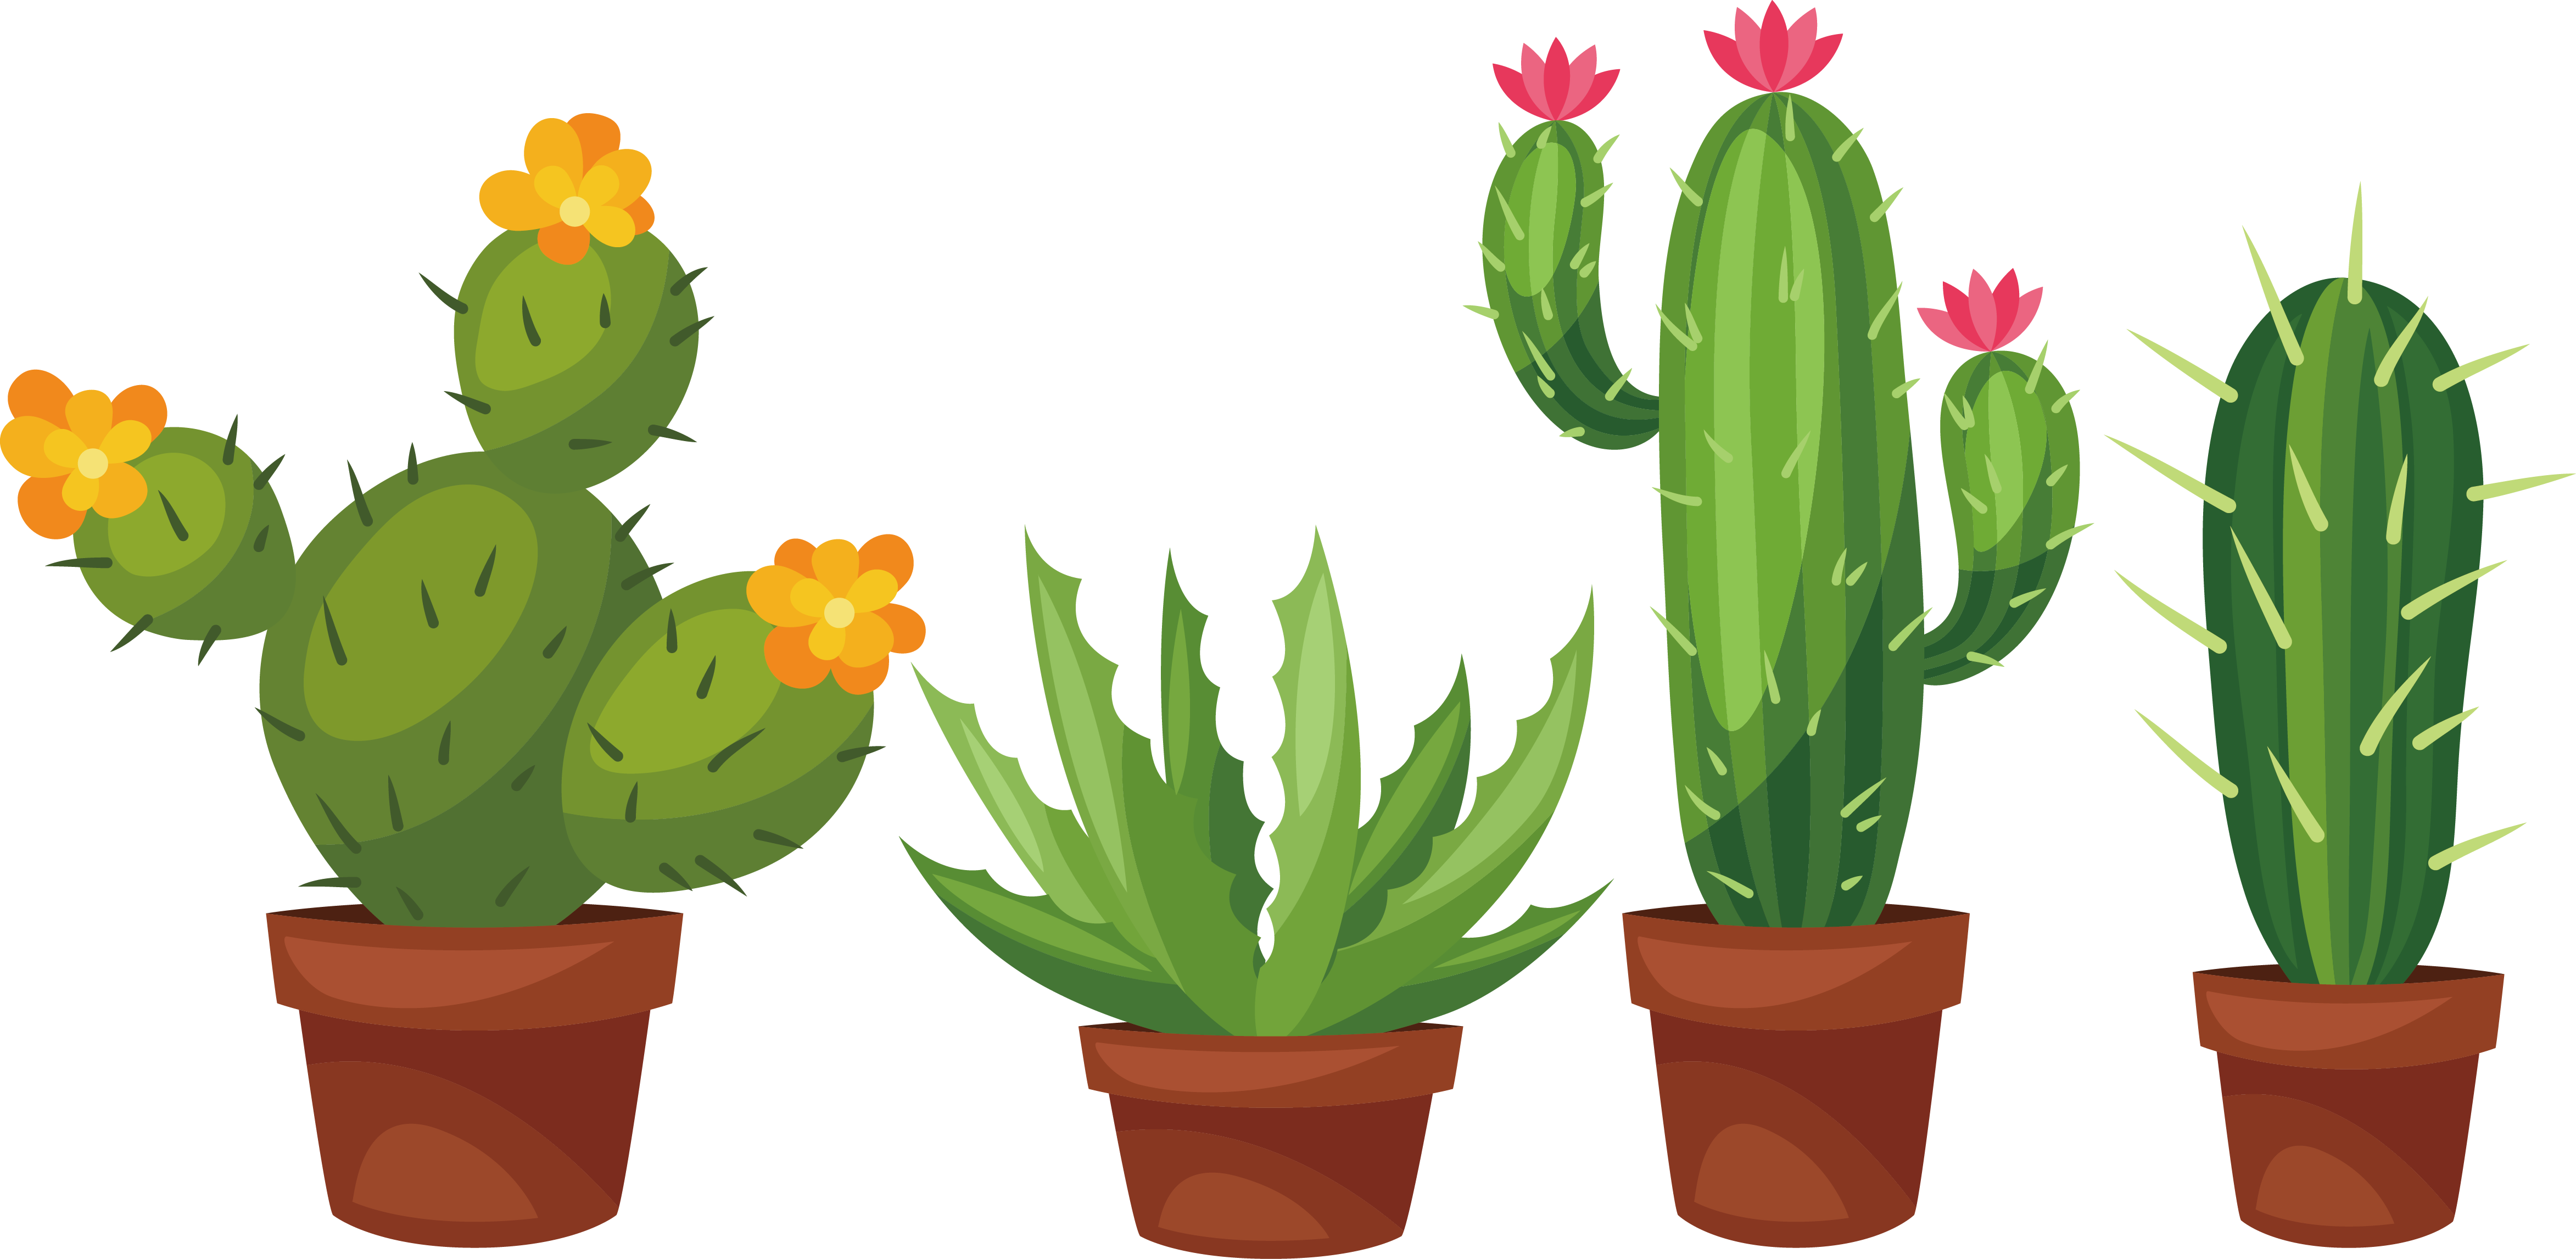 Cactus with flower clipart clipart freeuse Succulent plant Cactaceae Prickly pear Clip art - Hand-painted palm ... clipart freeuse